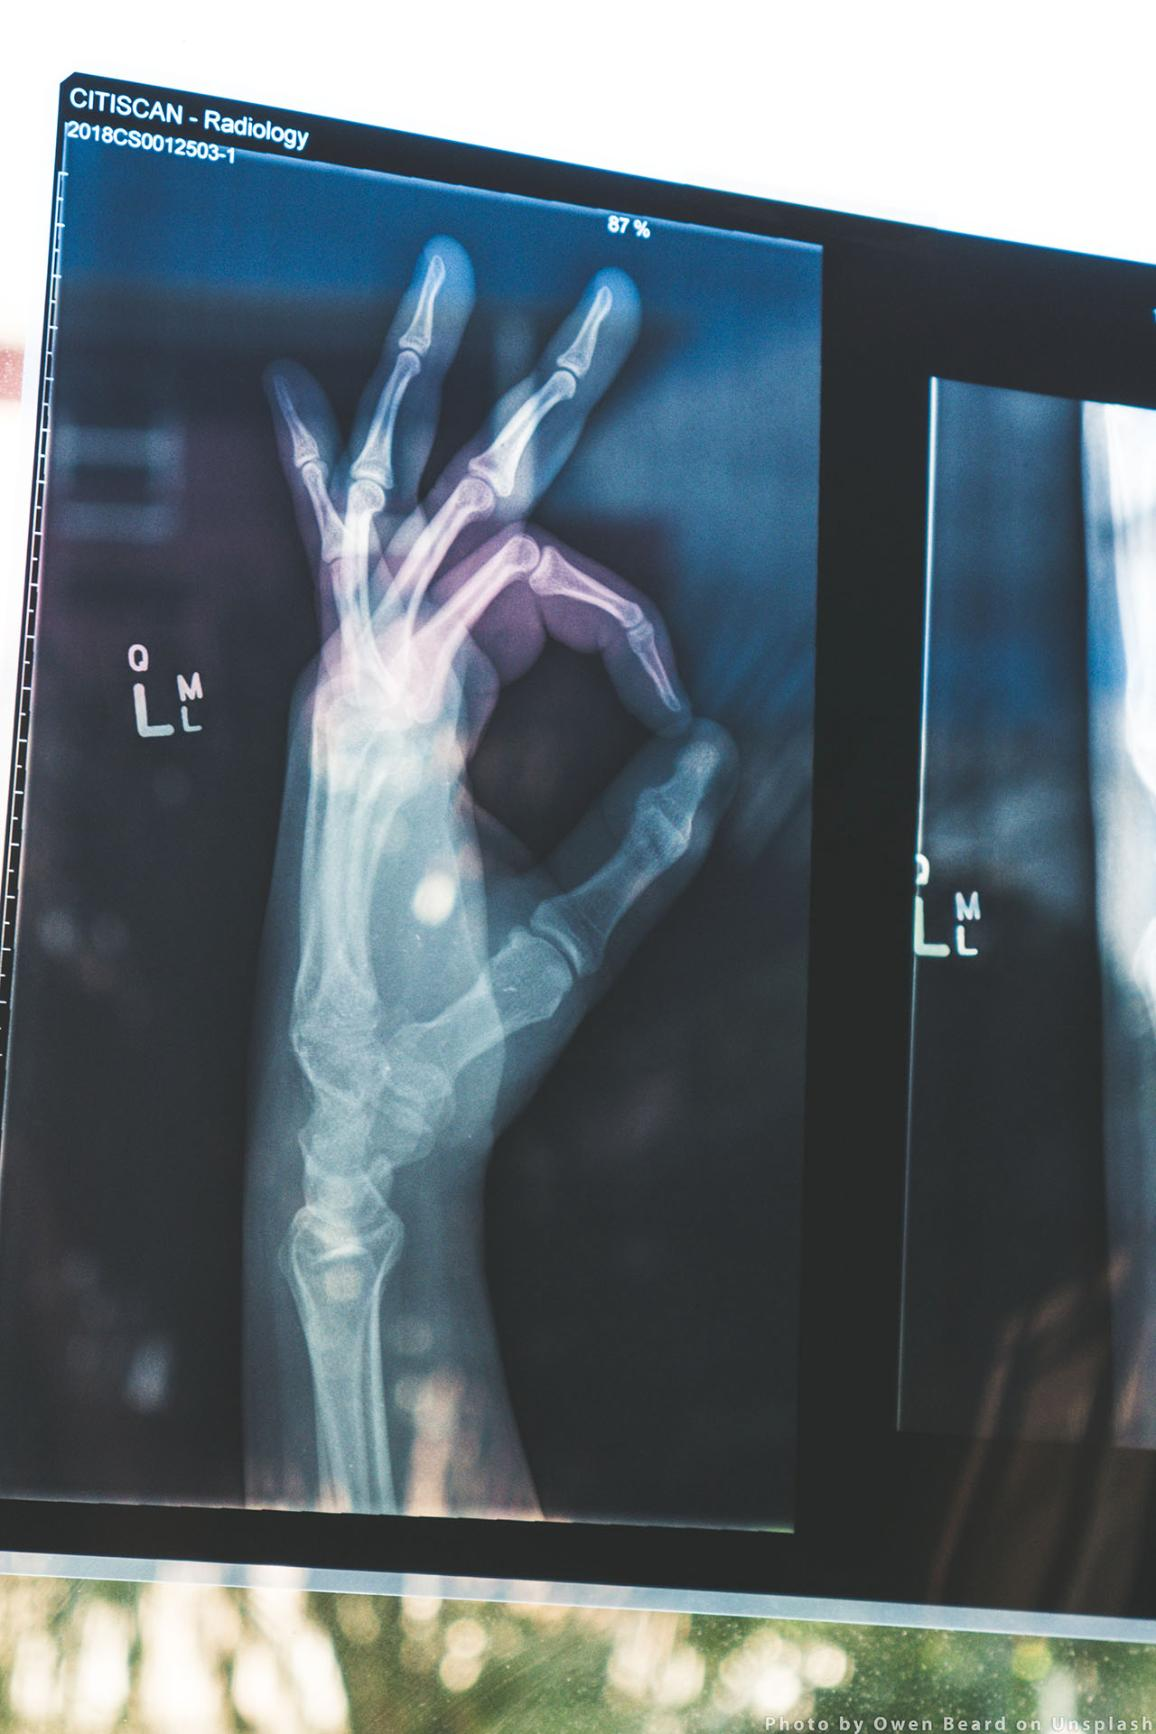 A photo of a radiology. Photo by Owen Beard on Unsplash